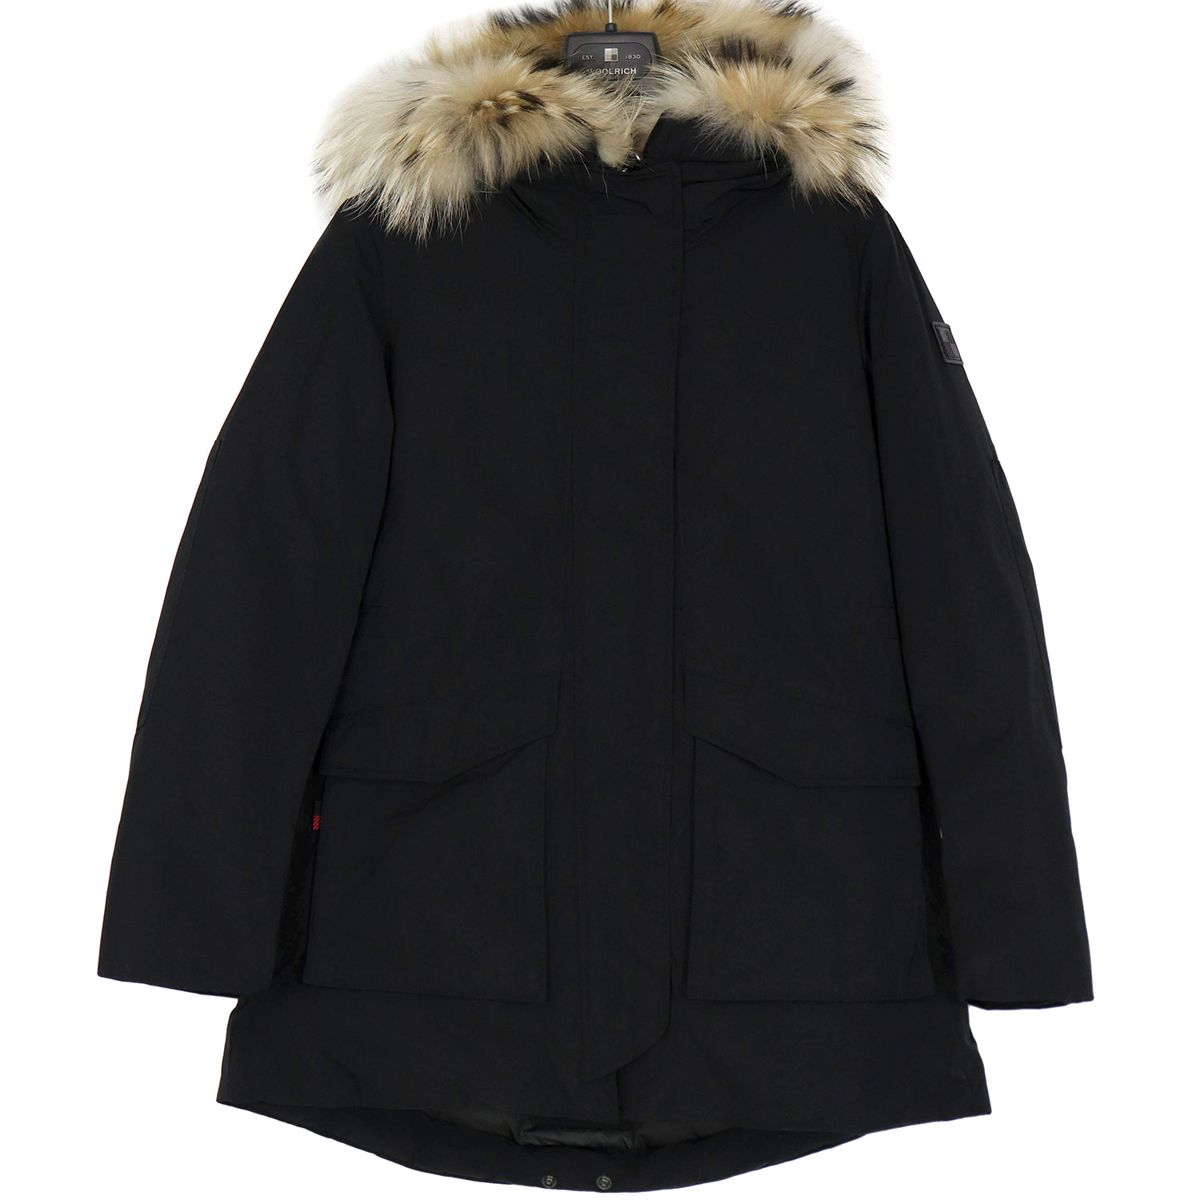 Military parka with fur-trimmed hood Black Woolrich